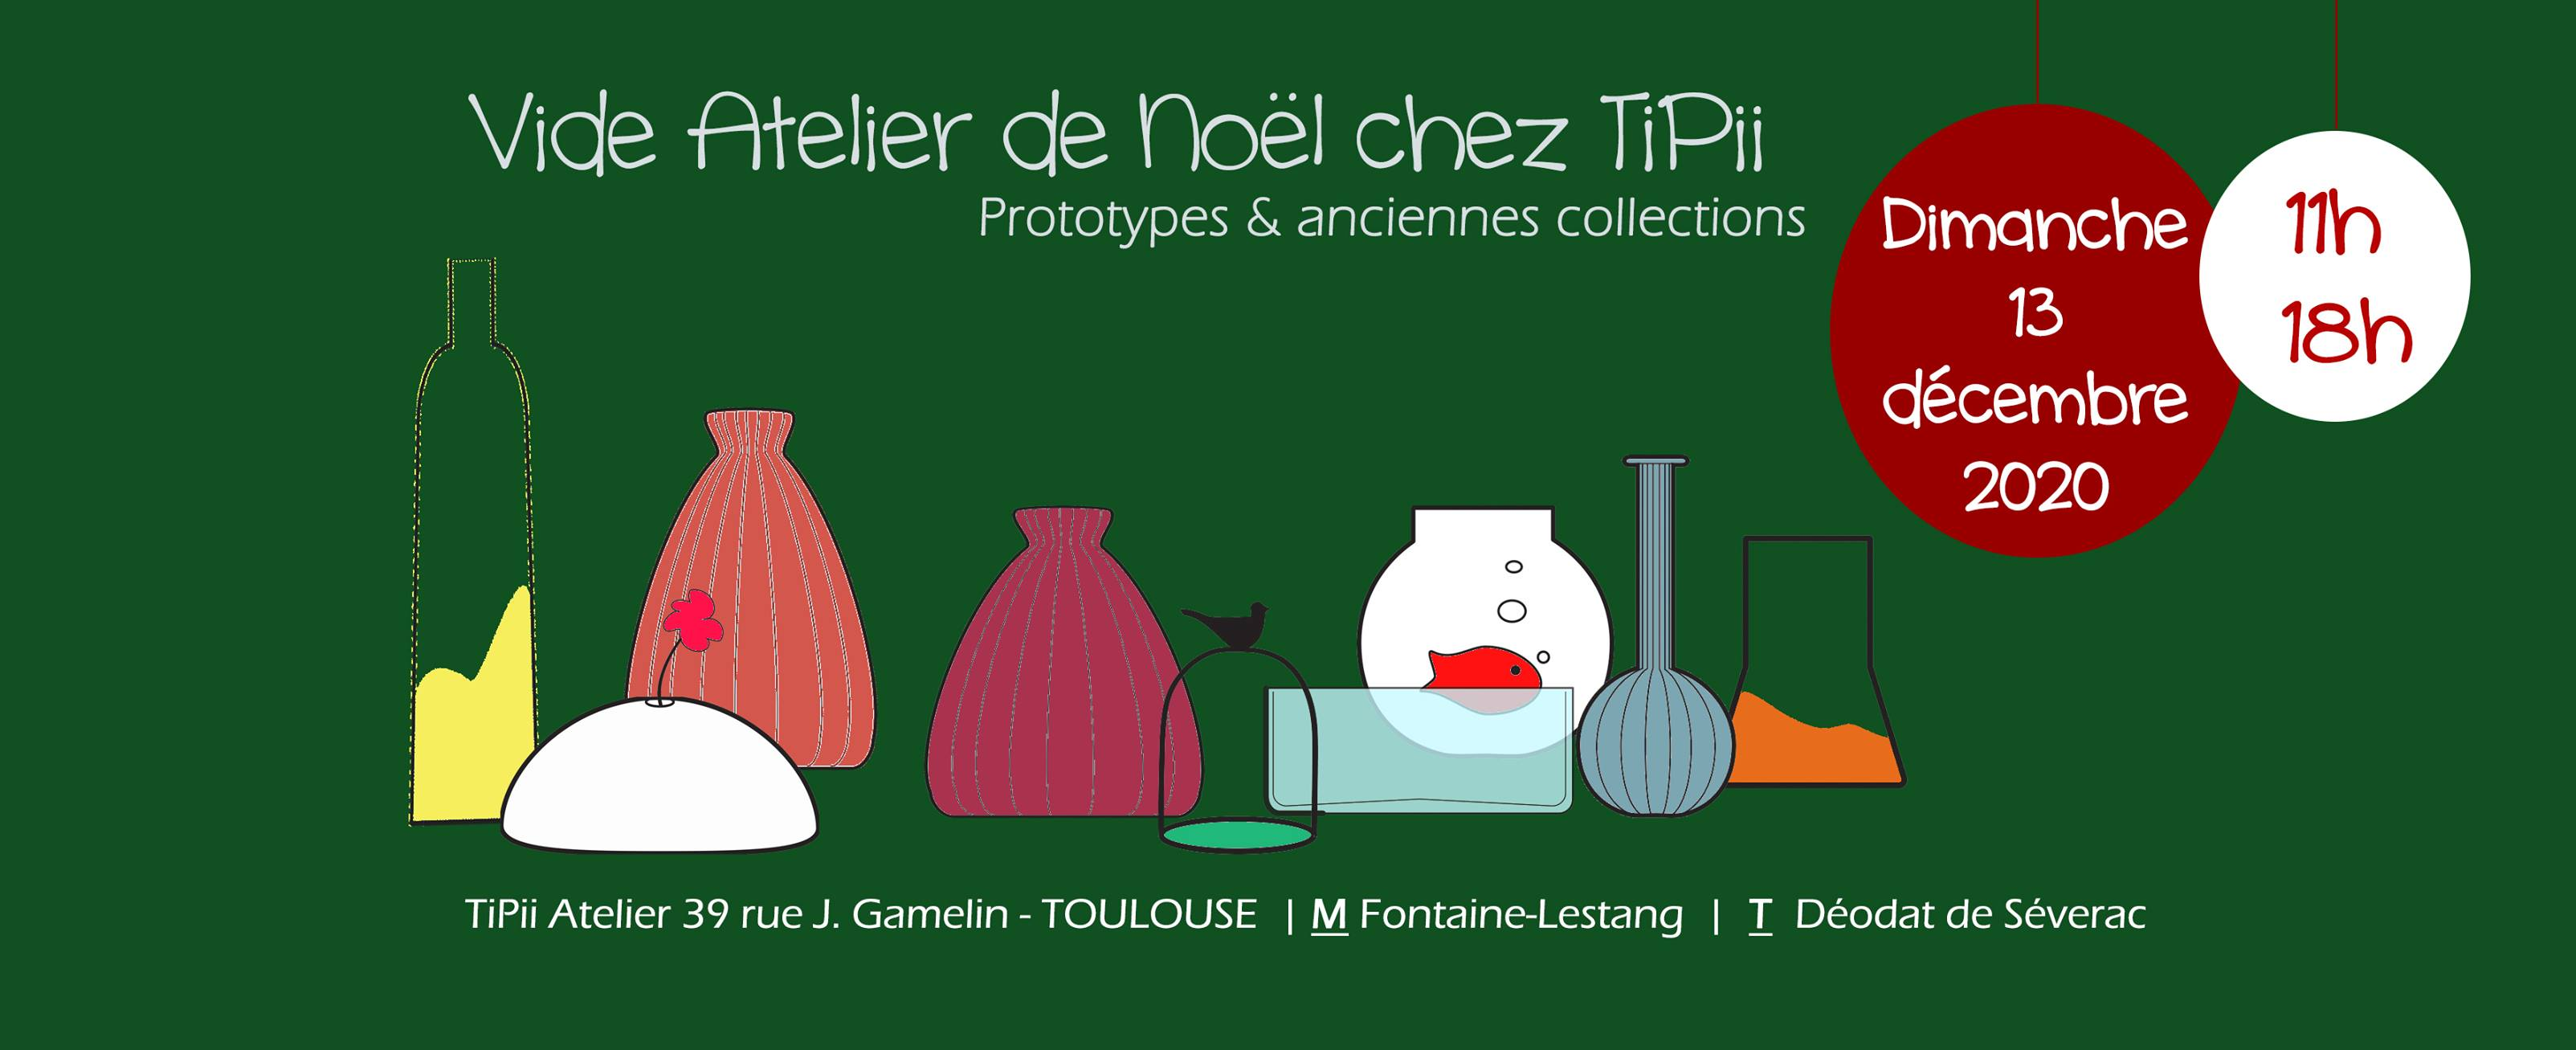 Vide Atelier Tipii 2020 Toulouse